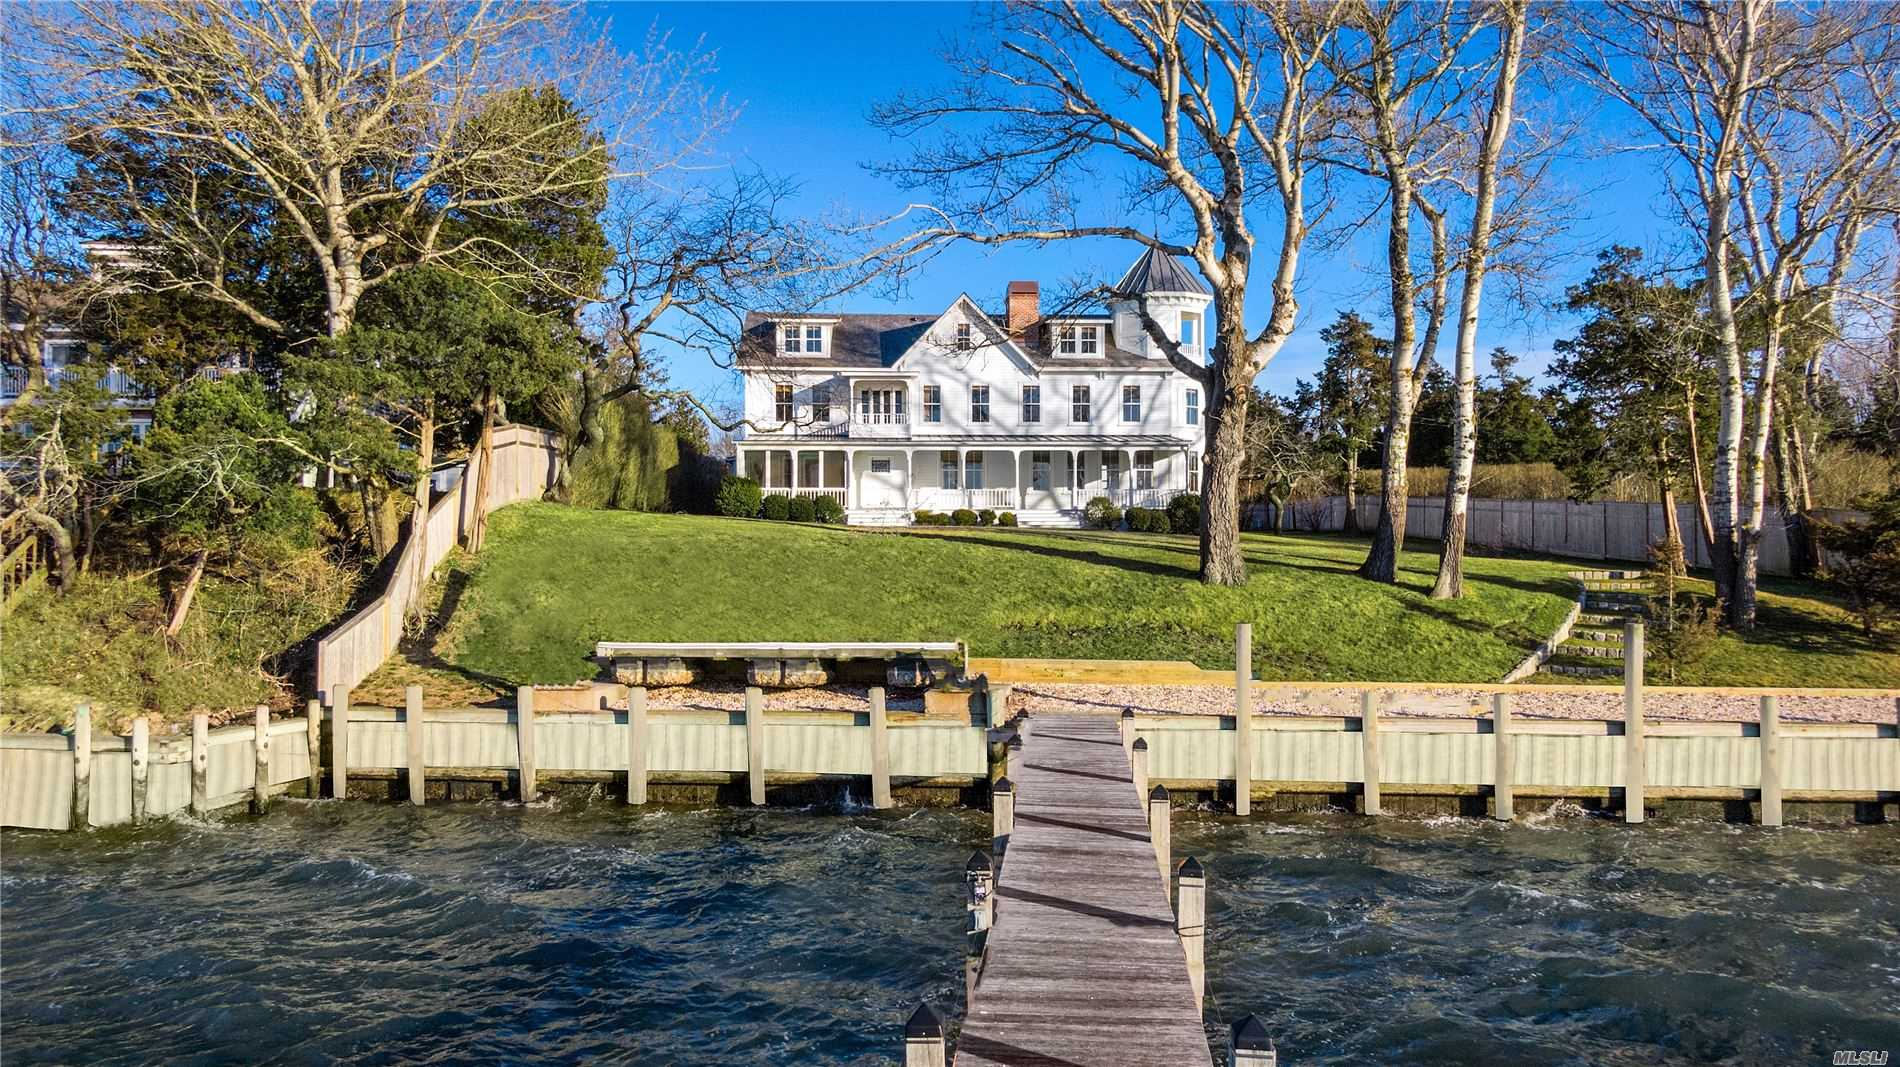 Located in Hampton Bays is this 1886 waterfront compound, The Peninsula House. Maintaining the original structure the current owner of the commenced a 2 yr restoration project. No expense was spared in the process & the home includes modern amenities. In addition to the main house, there is a pool house & carriage house on the north side. A few other things to note, new septic, all new irrigation & well, Sonos & dehumidification system.